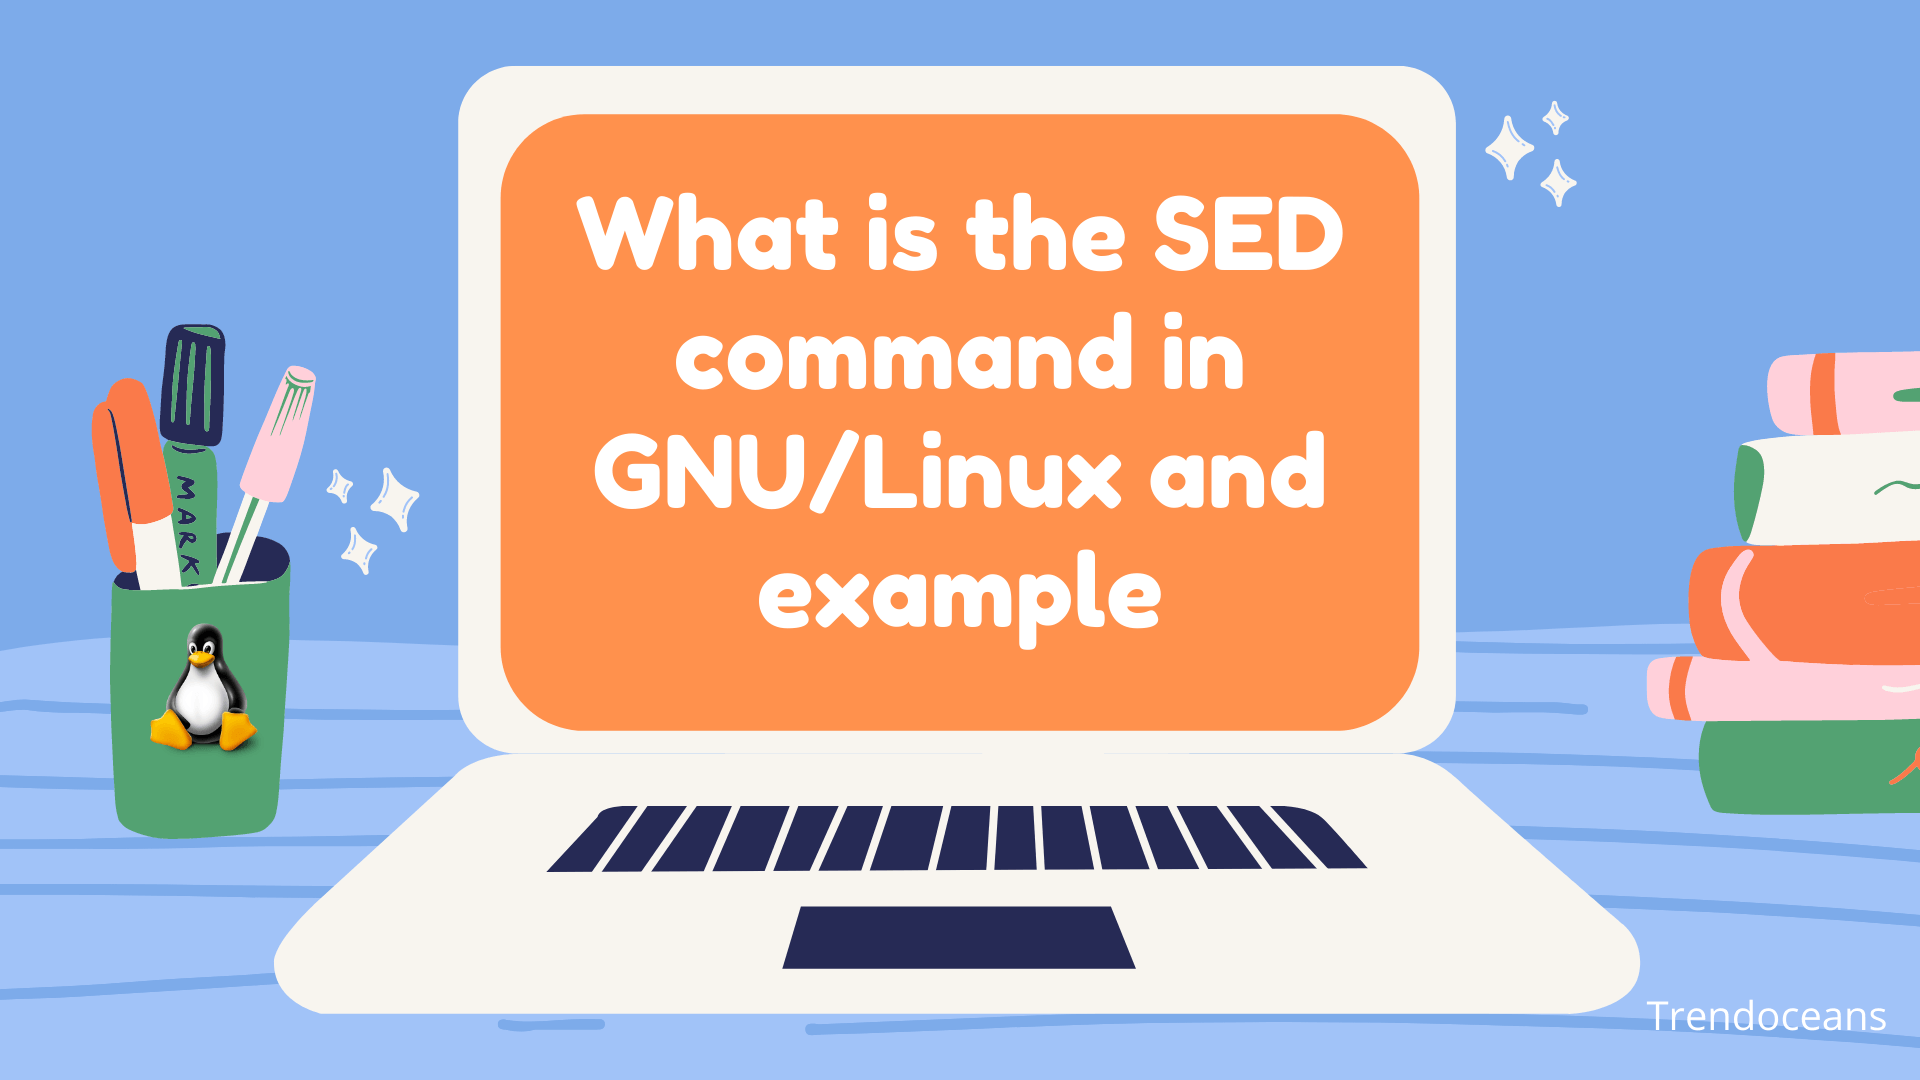 What is the SED command in GNU/Linux and example?